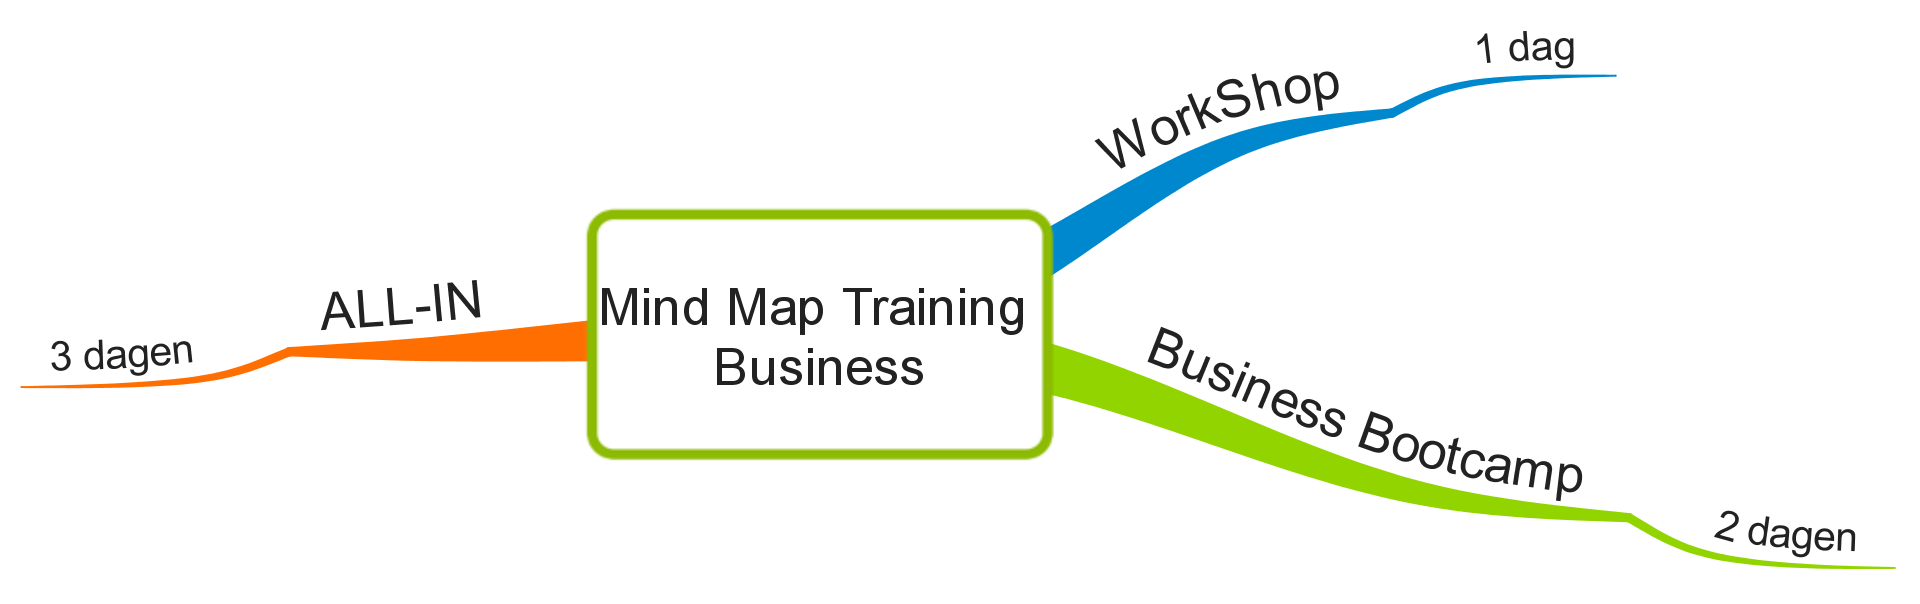 Mind Map Training Business